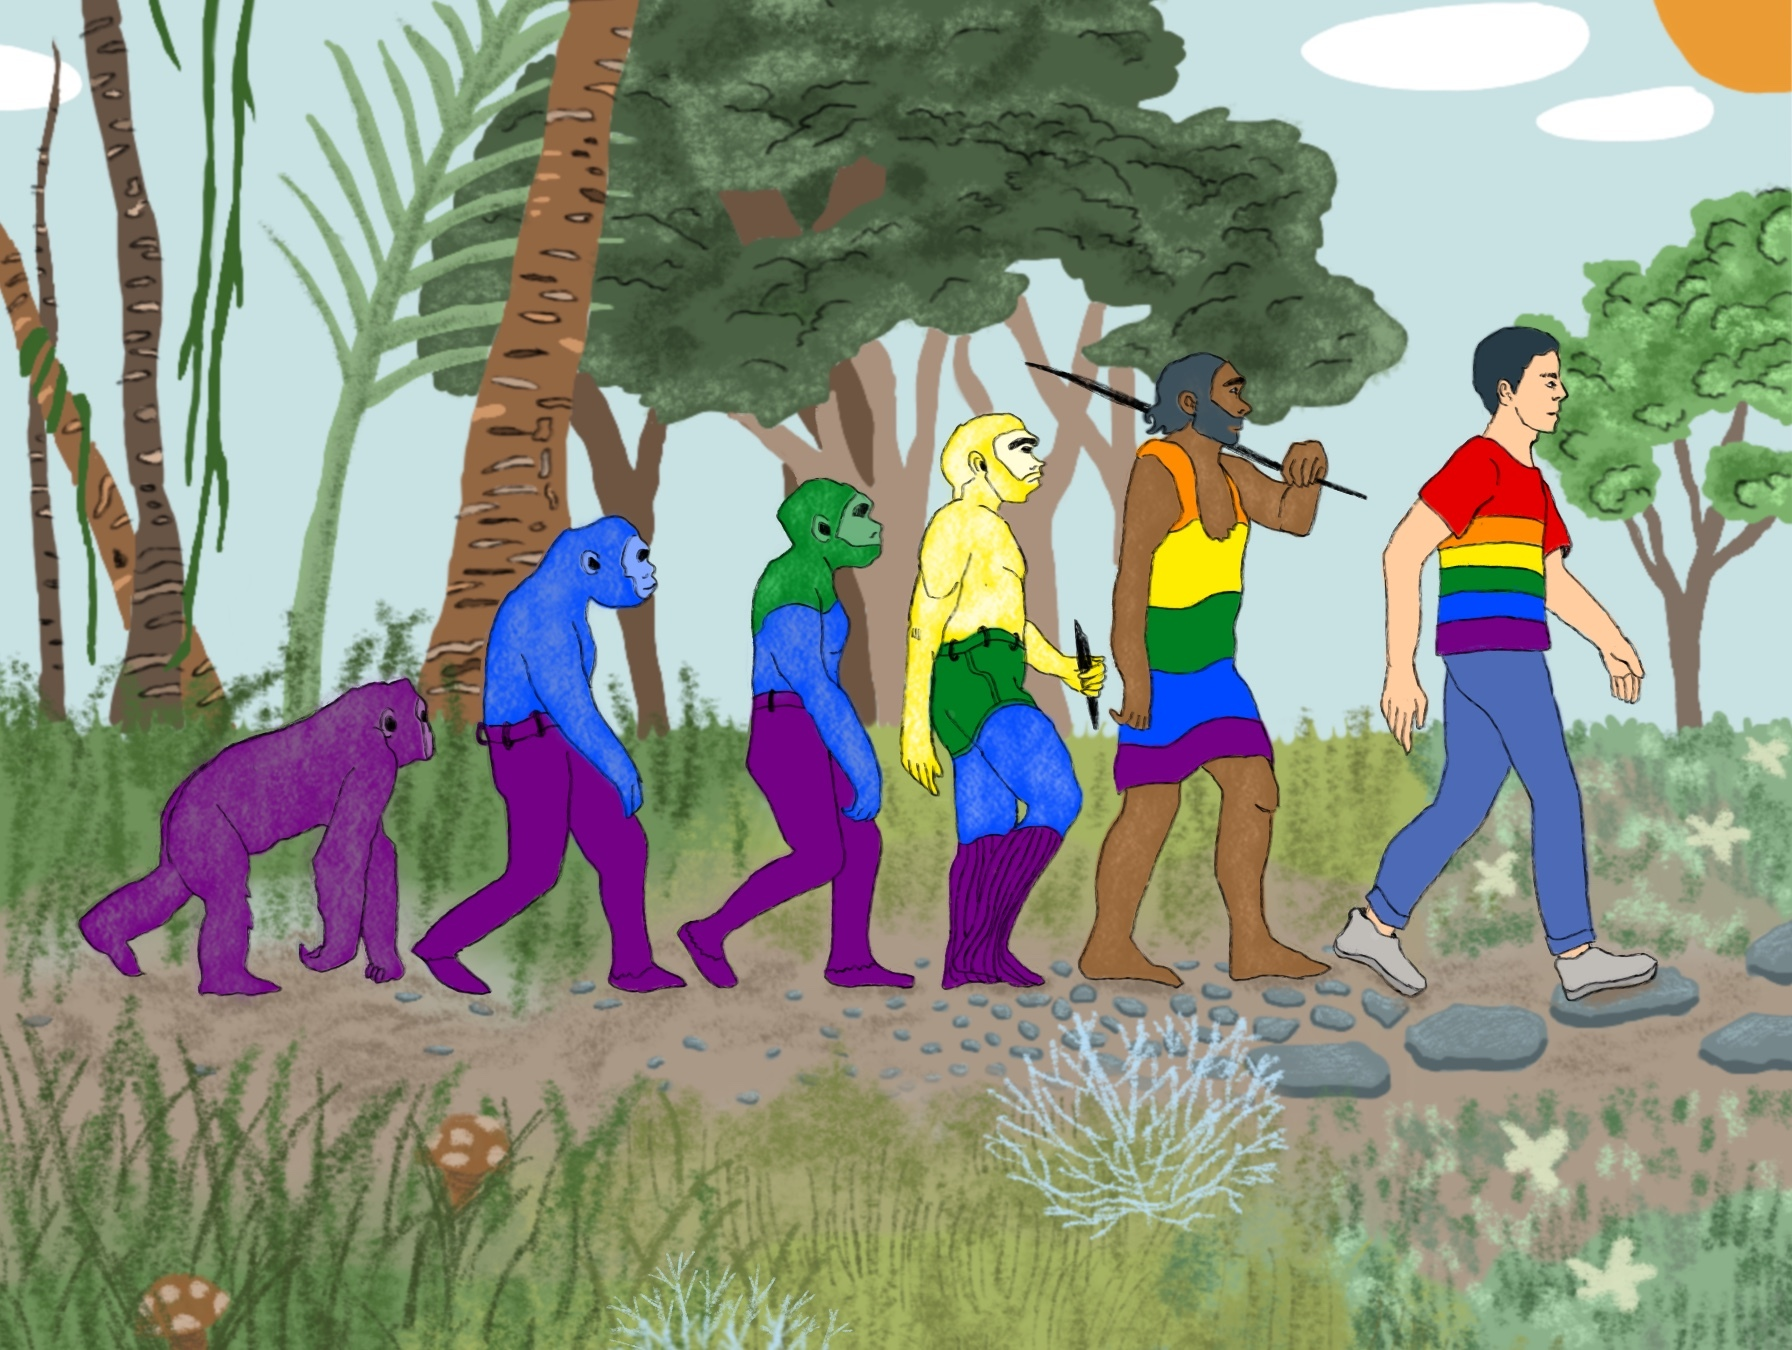 'Visible: Out on Television' illustrated by the evolution of humans from apes to a member of the LGBTQ community